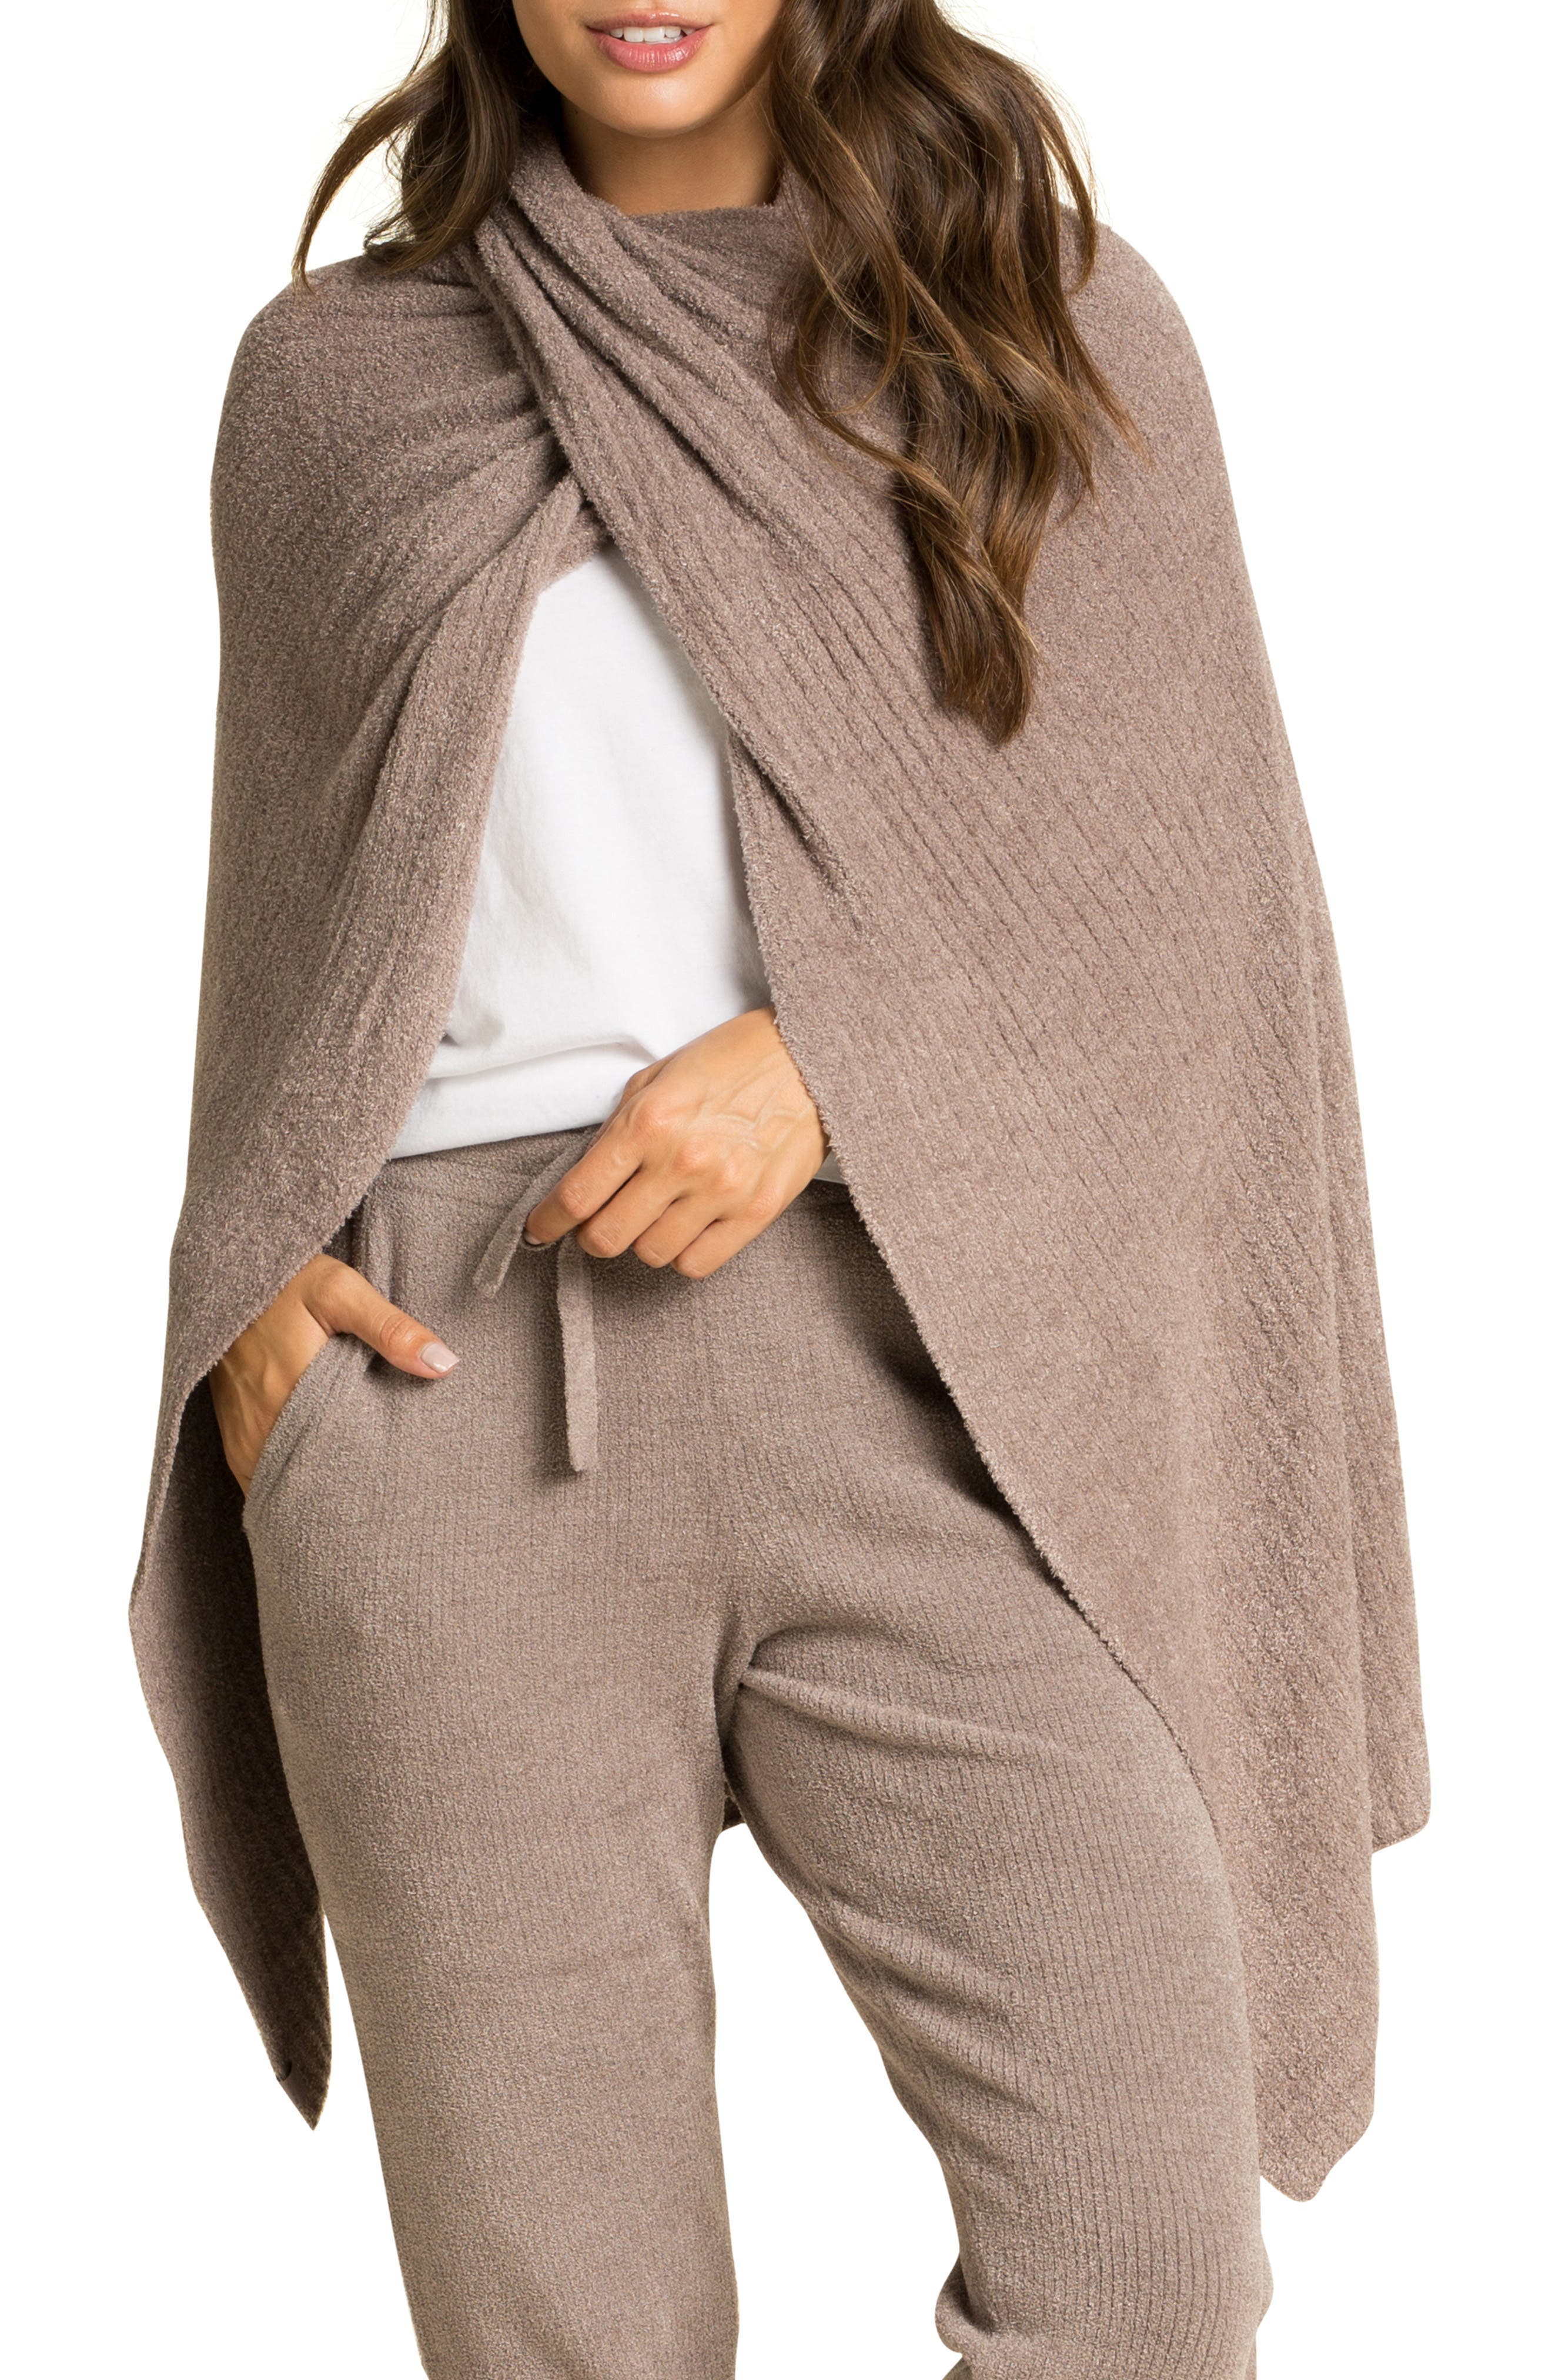 Barefoot Dreams(R) CozyChic Lite(R) Ribbed Travel Wrap in Driftwood at Nordstrom